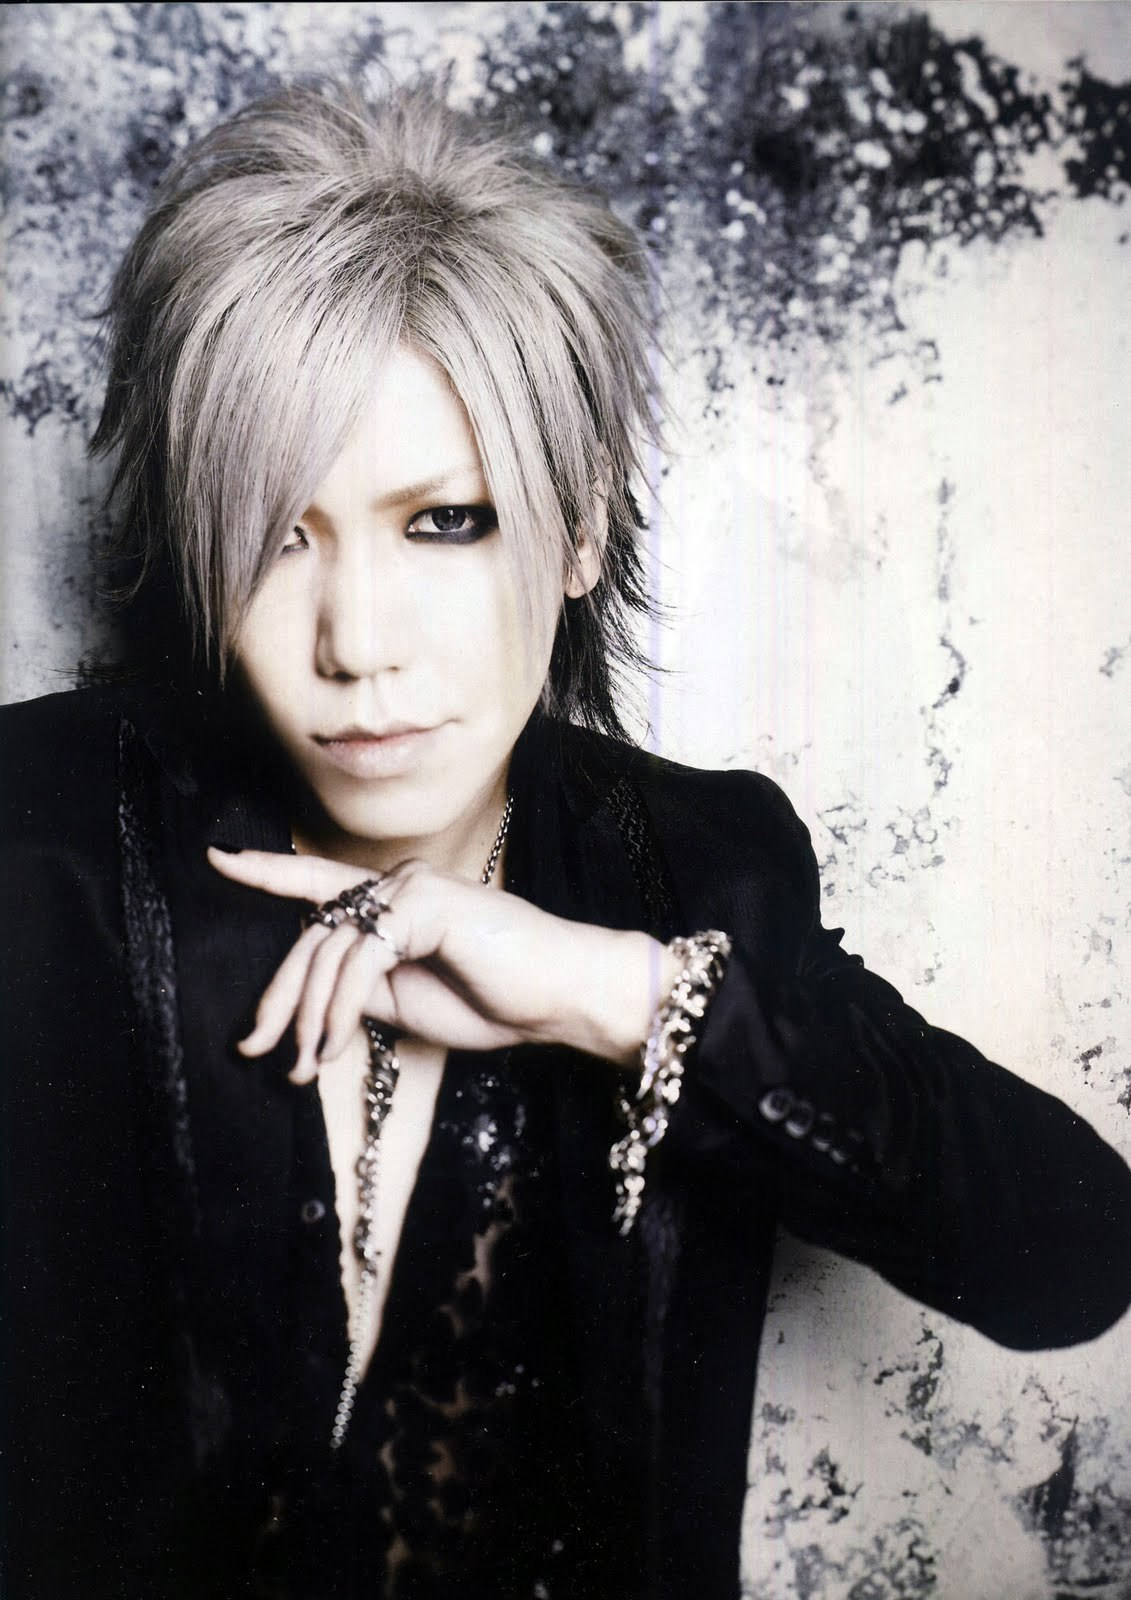 http://images5.fanpop.com/image/photos/26100000/Aoi-guitar-the-gazette-26159043-1131-1600.jpg